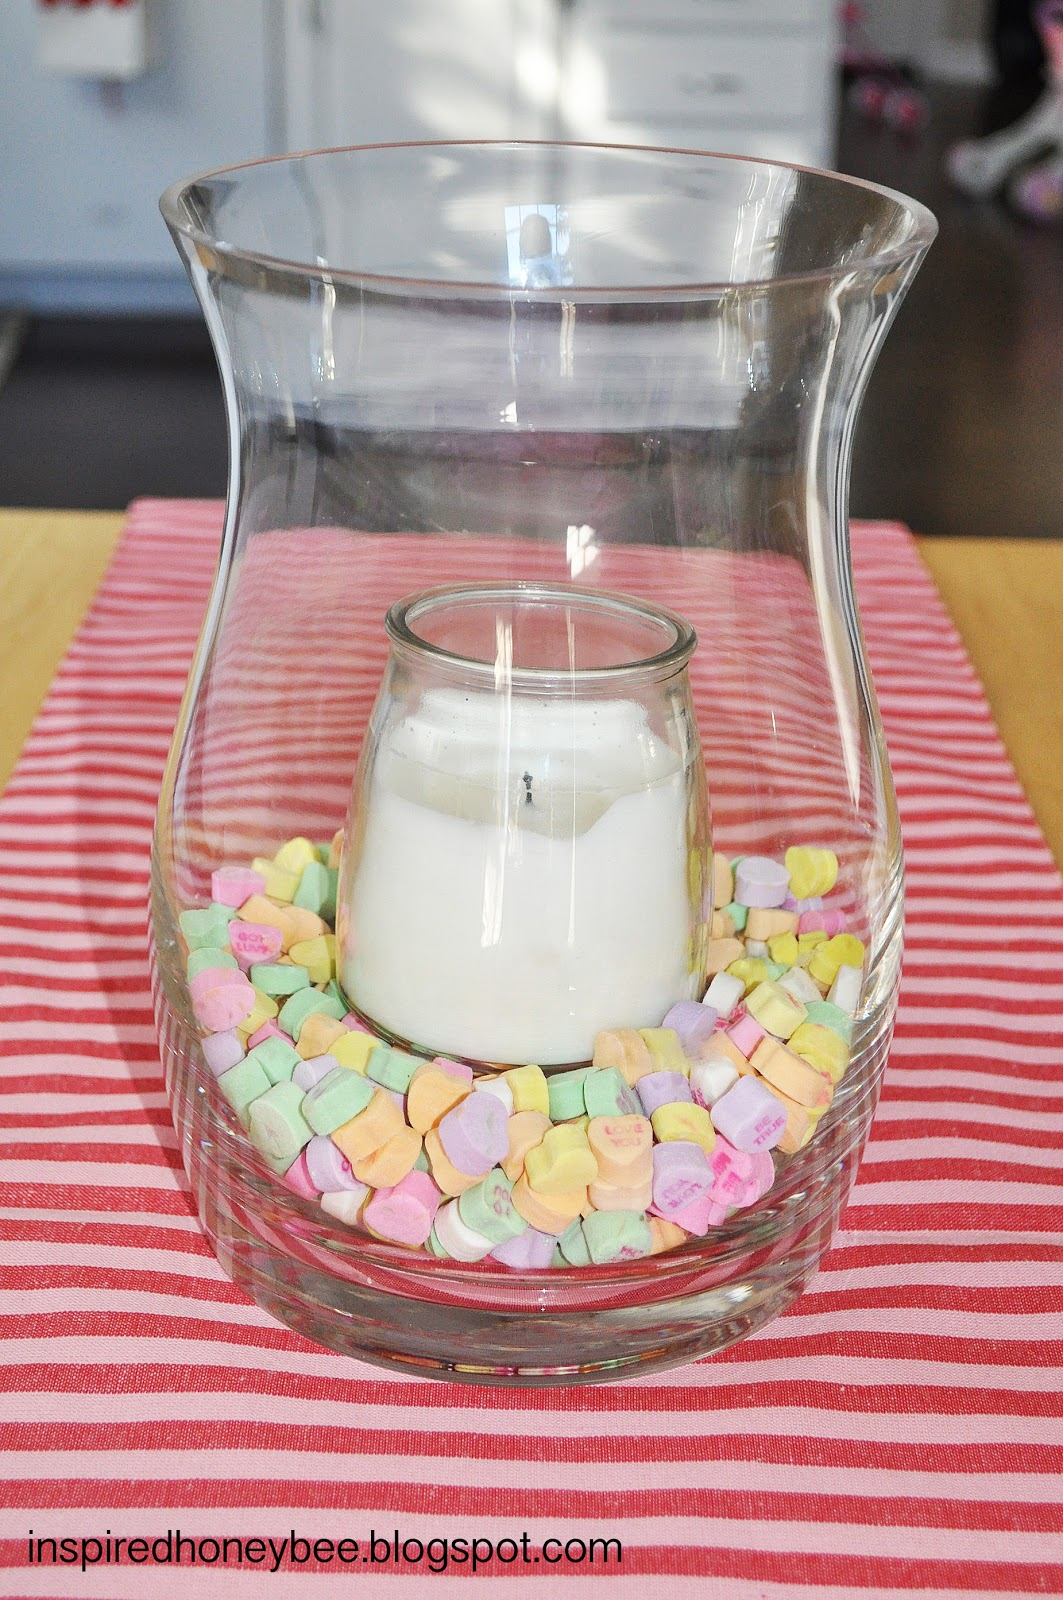 Inspired honey bee craft valentines day projects for a weekend conversation heart vase filler so easy and cute got the idea from pinterest but couldnt find an original source link reviewsmspy